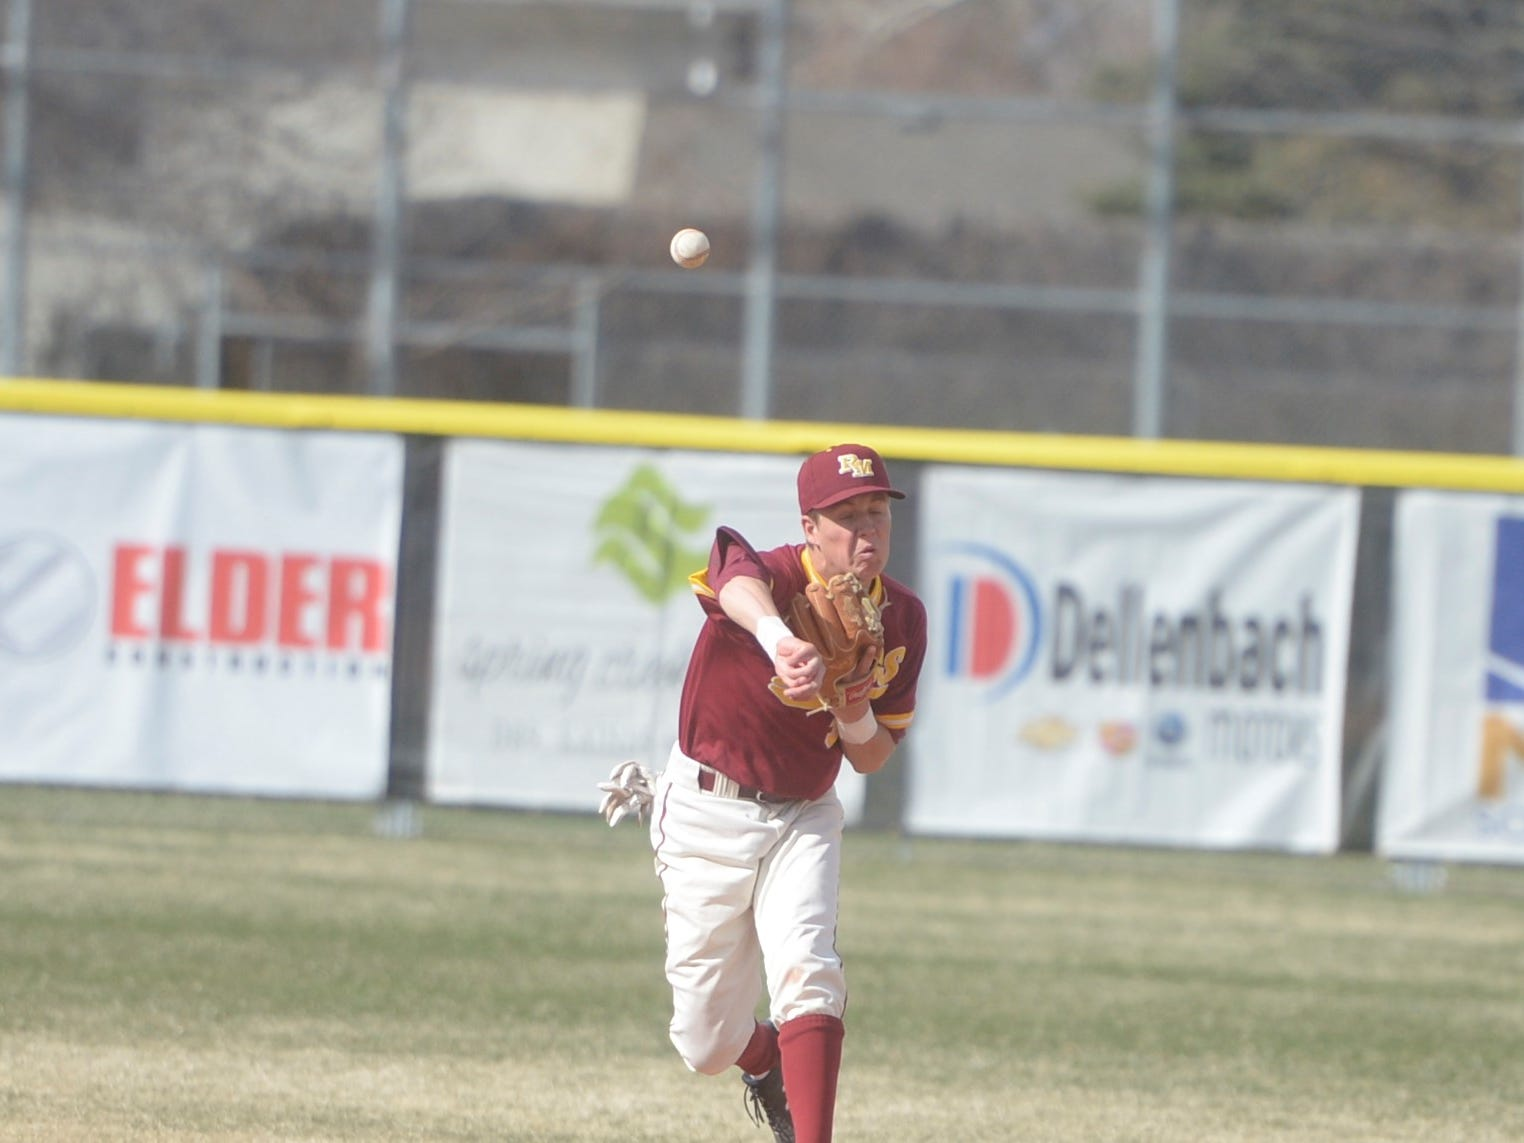 Rocky Mountain baseball shortstop Will Vasseur throws to first during a game Wednesday, April 3, 2019 against Mountain Vista. Mountain Vista won 10-2.